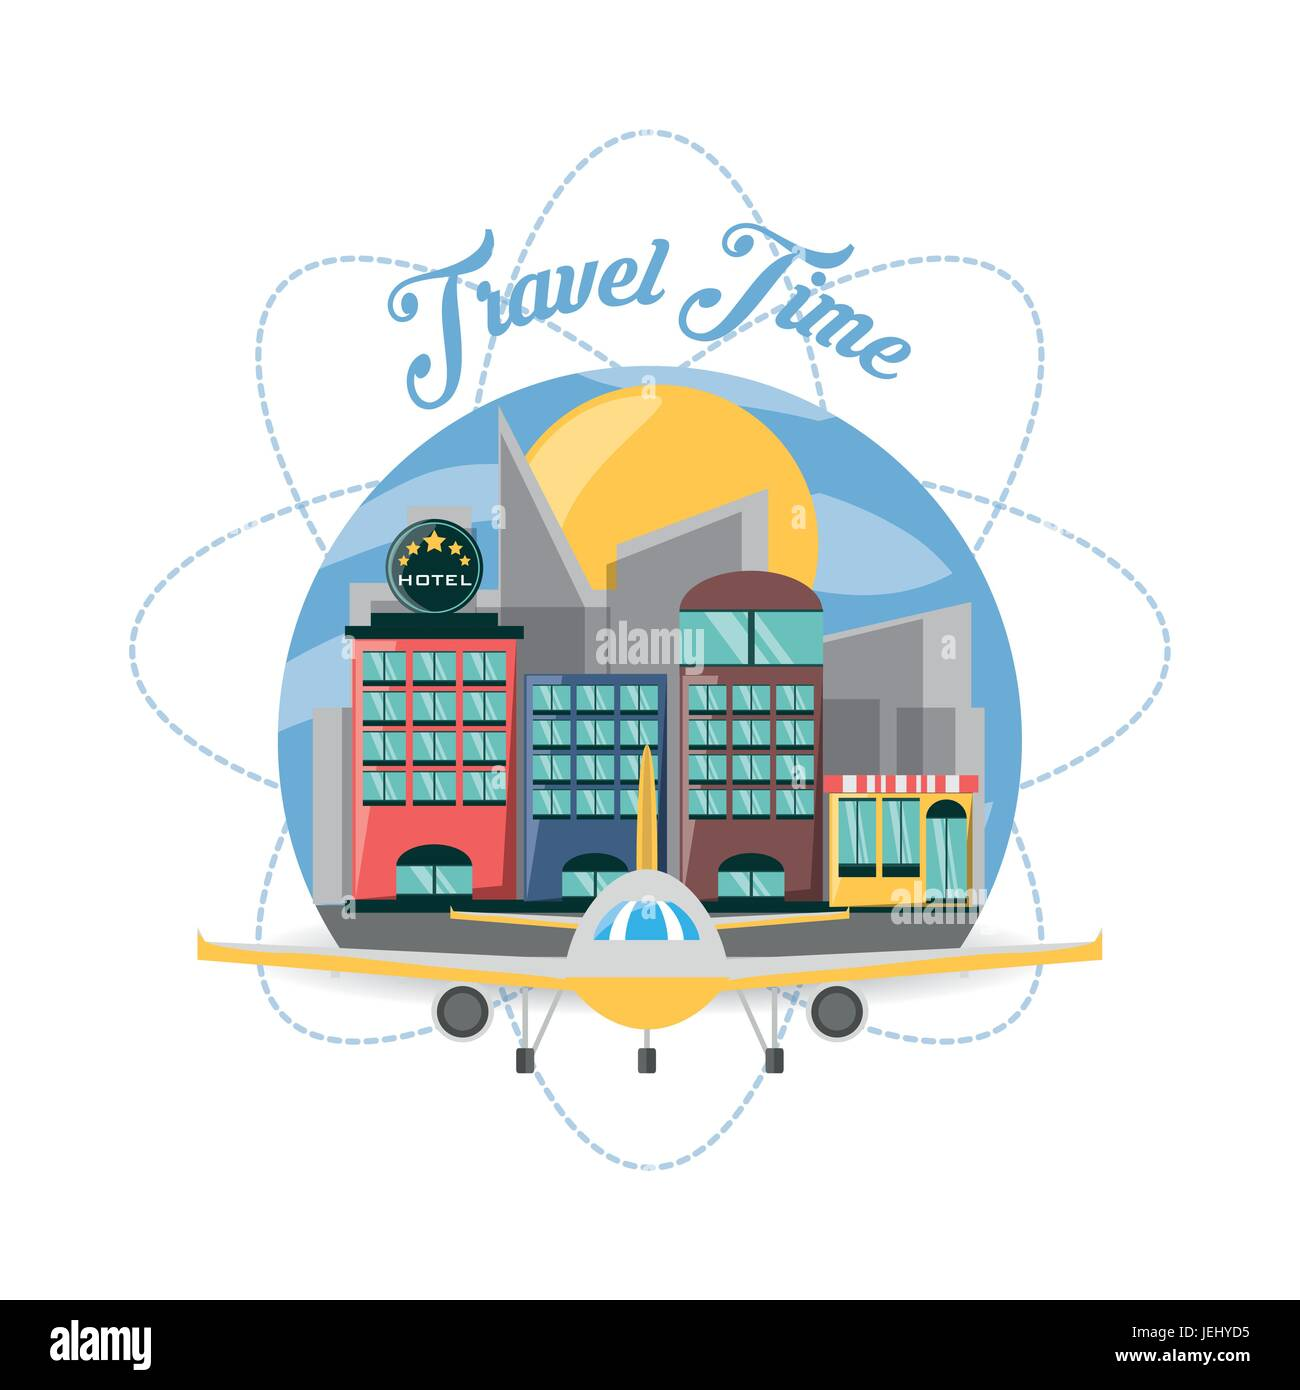 airplane and hotel in the city of the travel - Stock Image